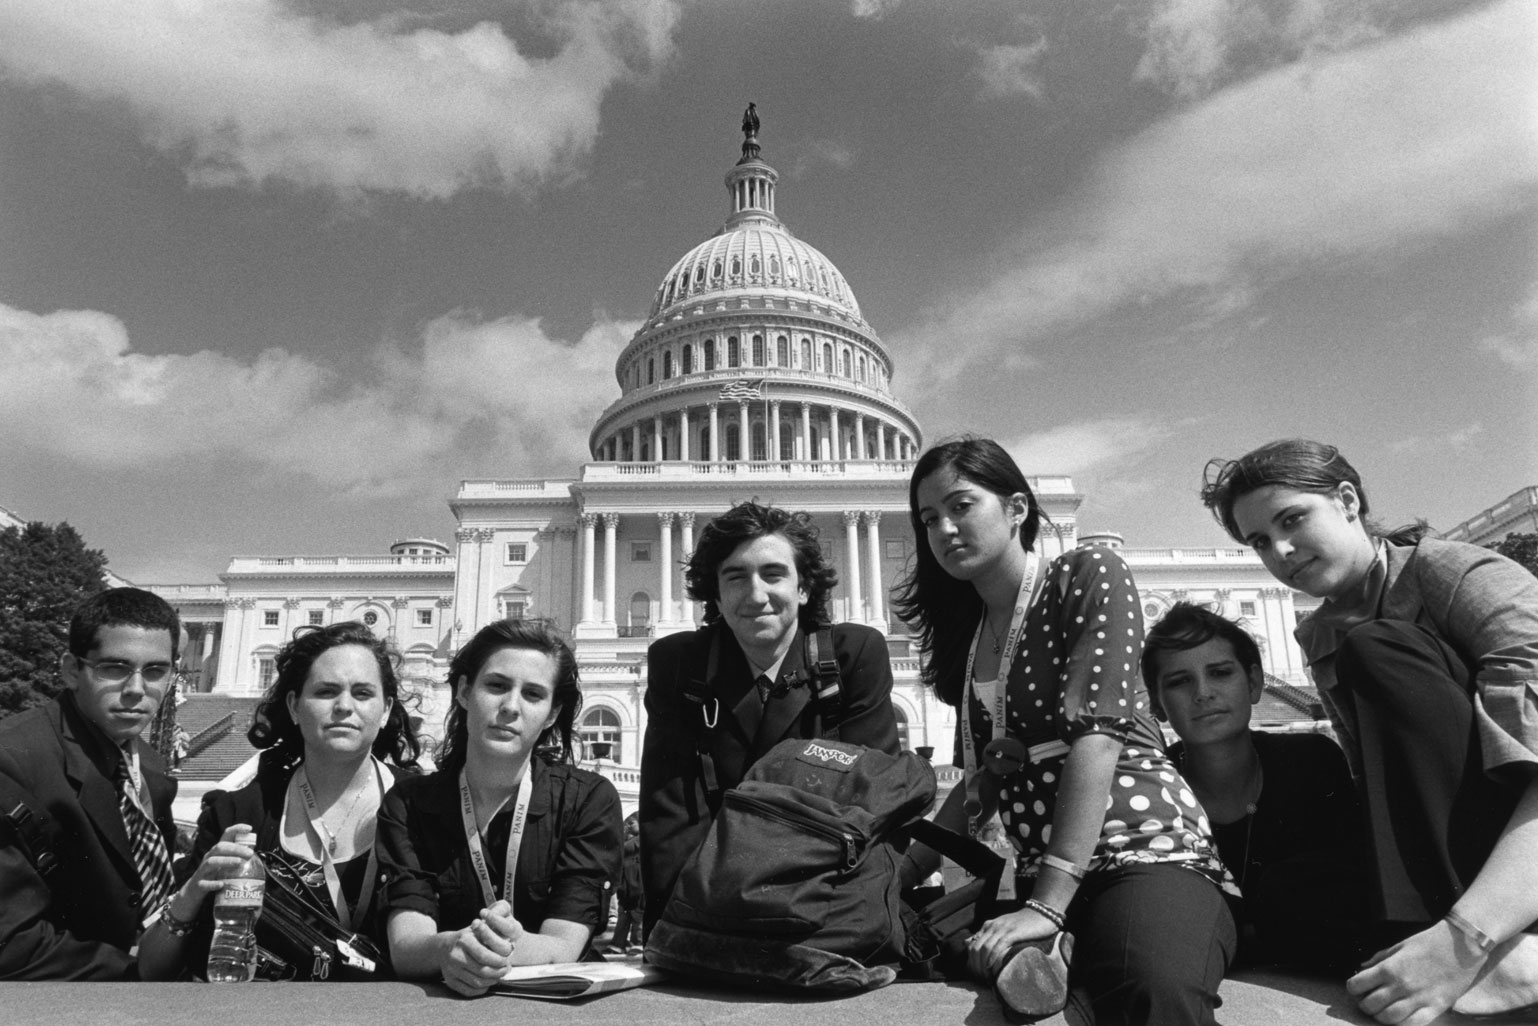 Civil Discourse Curriculum - Students on steps of the US Capitol